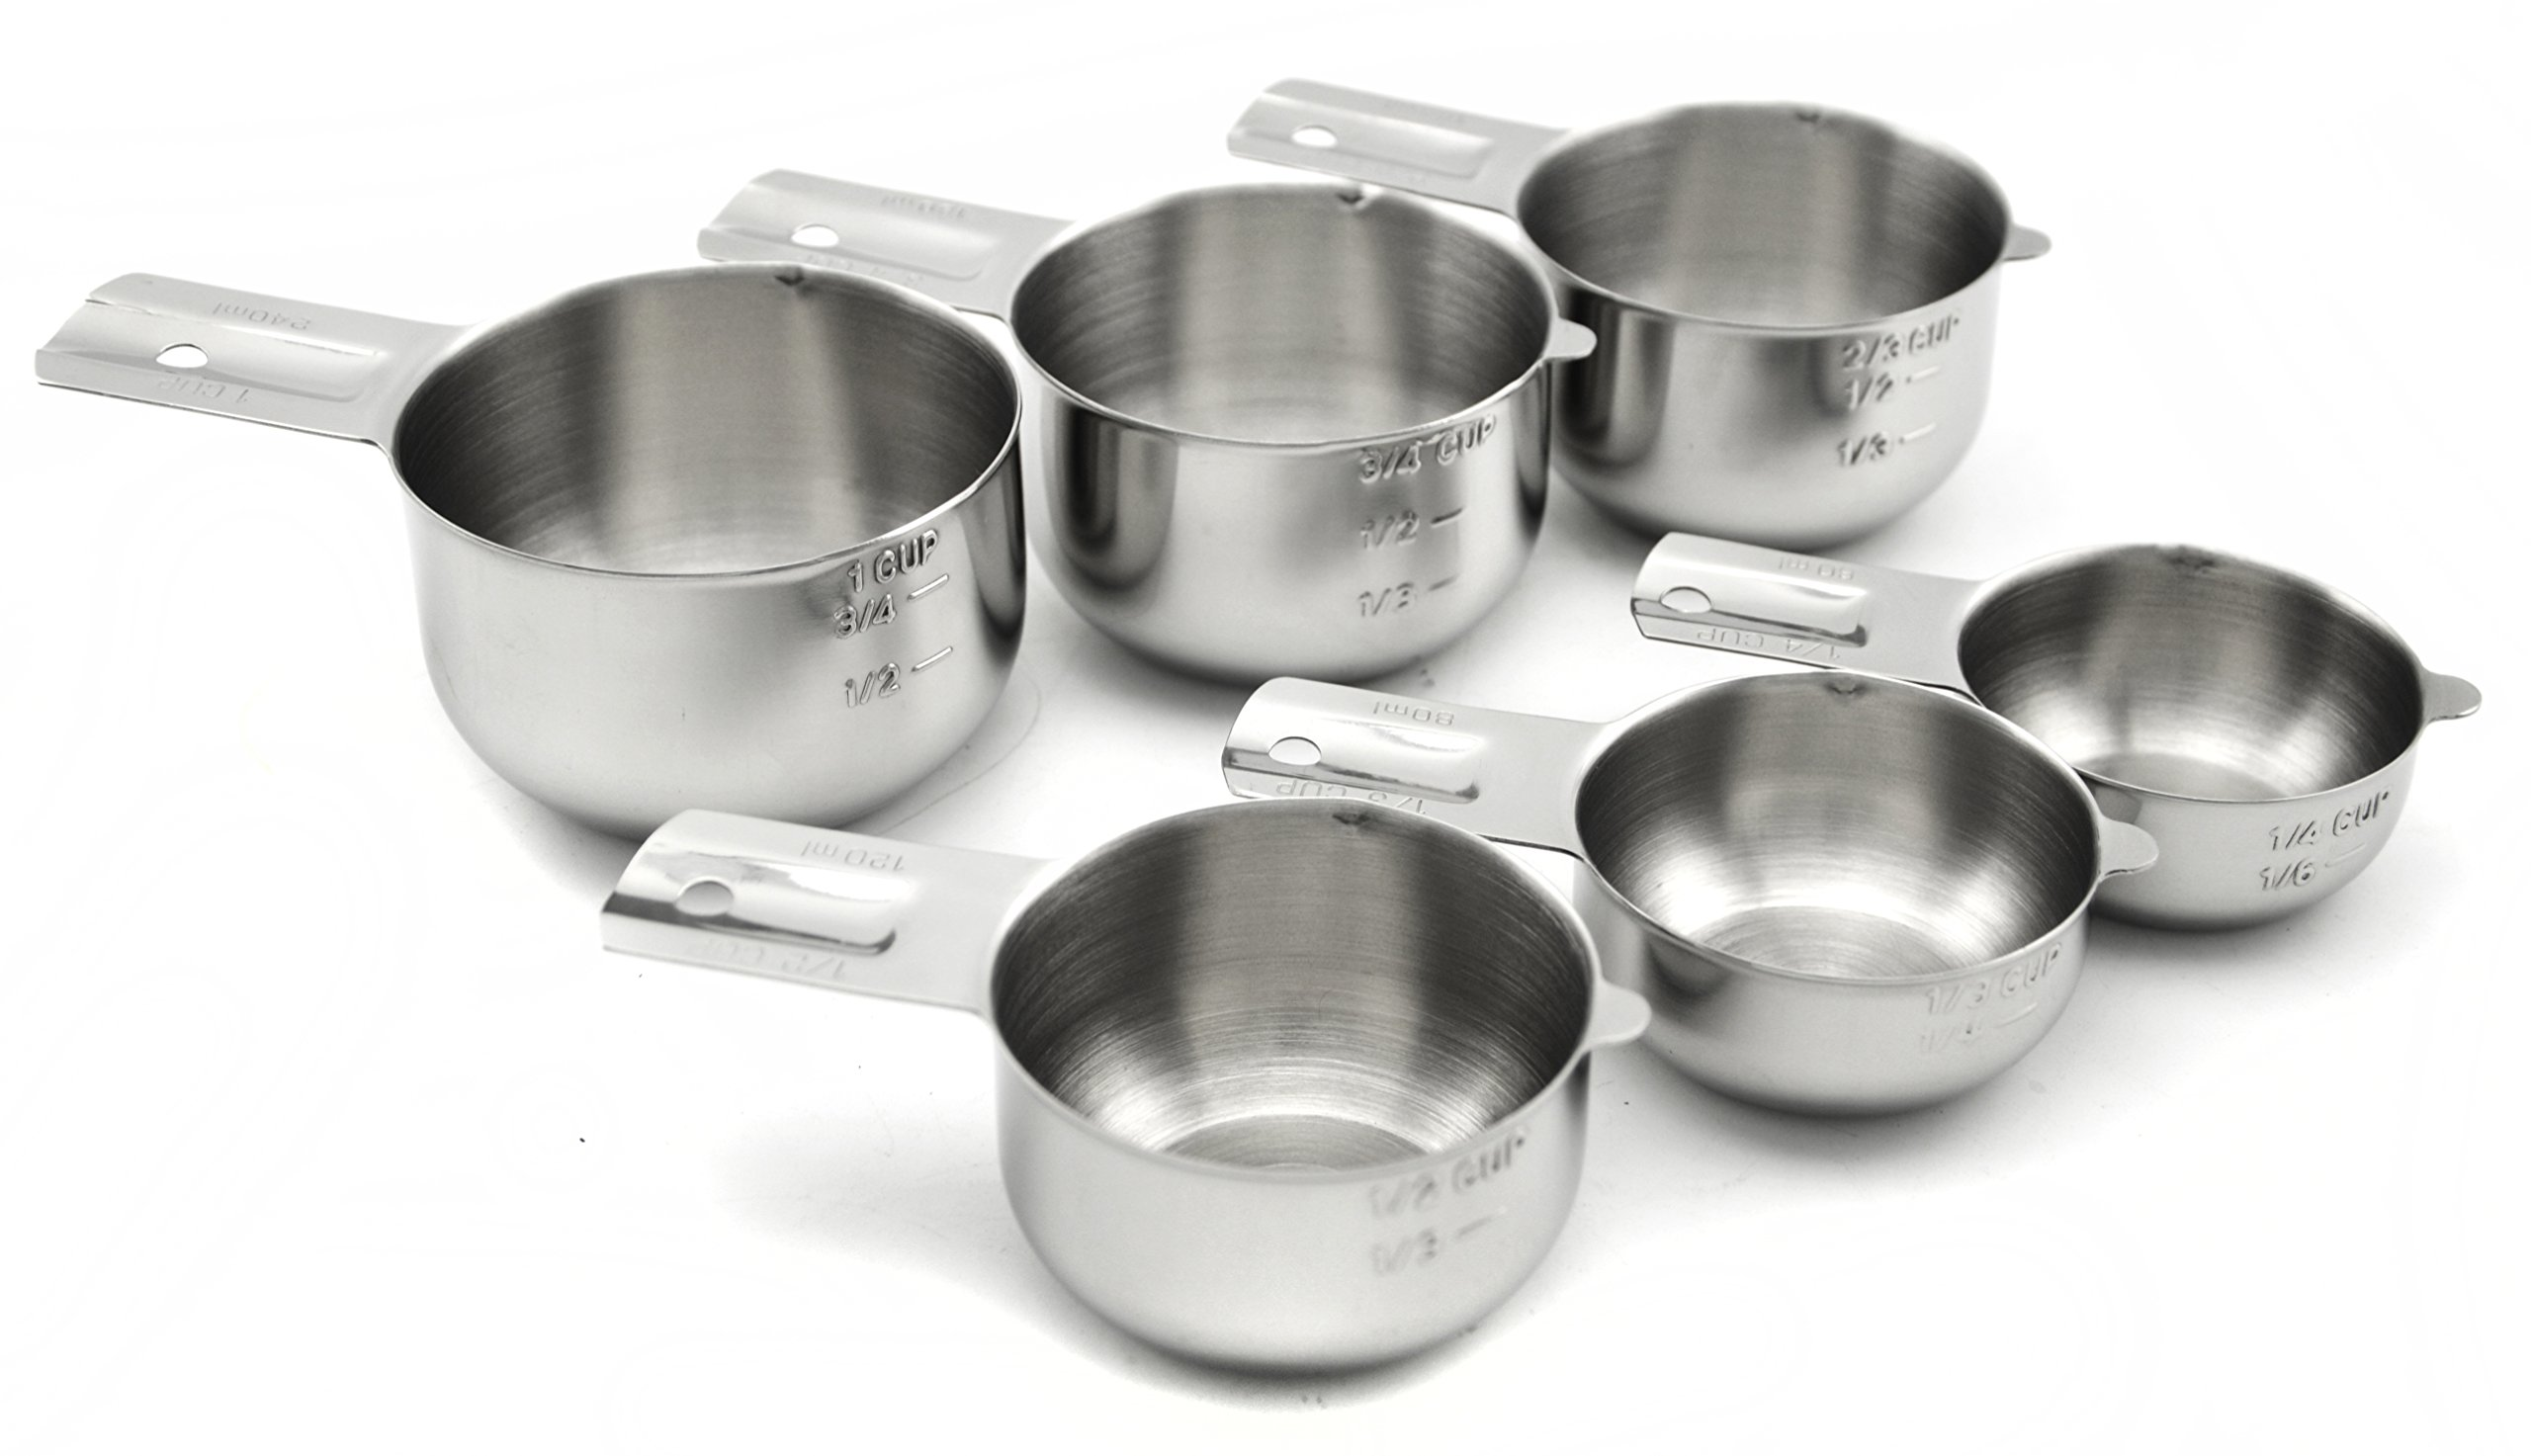 supreme measuring cups and spoons best stainless steel kitchen accessories set 747180222586 ebay. Black Bedroom Furniture Sets. Home Design Ideas